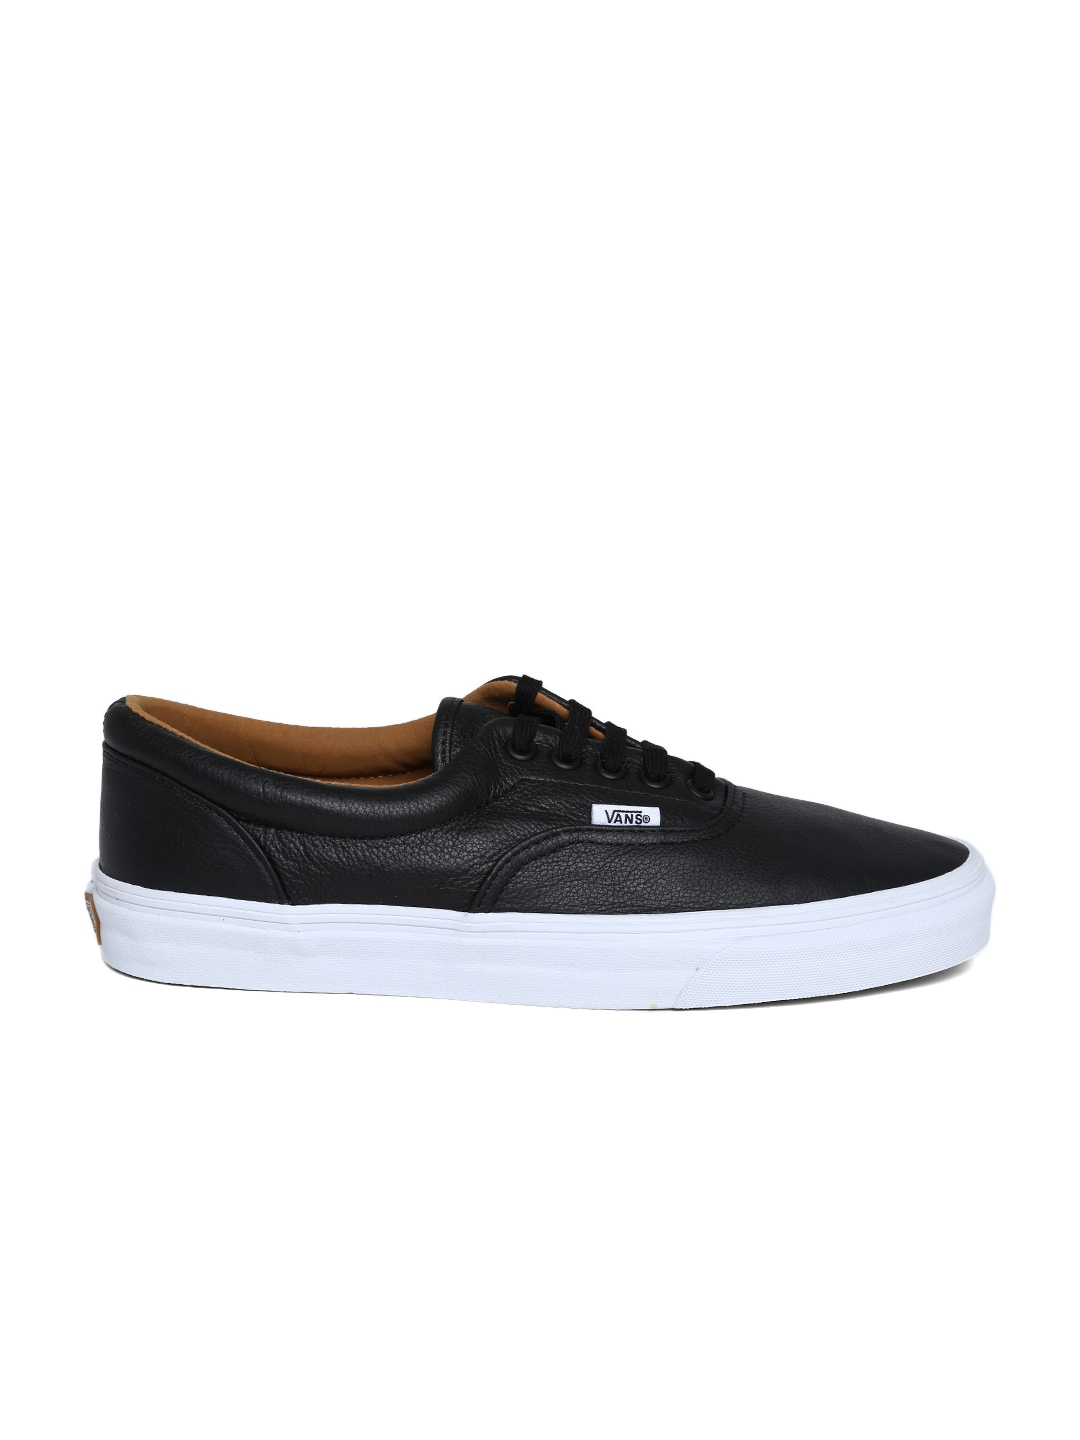 myntra vans unisex black leather casual shoes 705391 buy